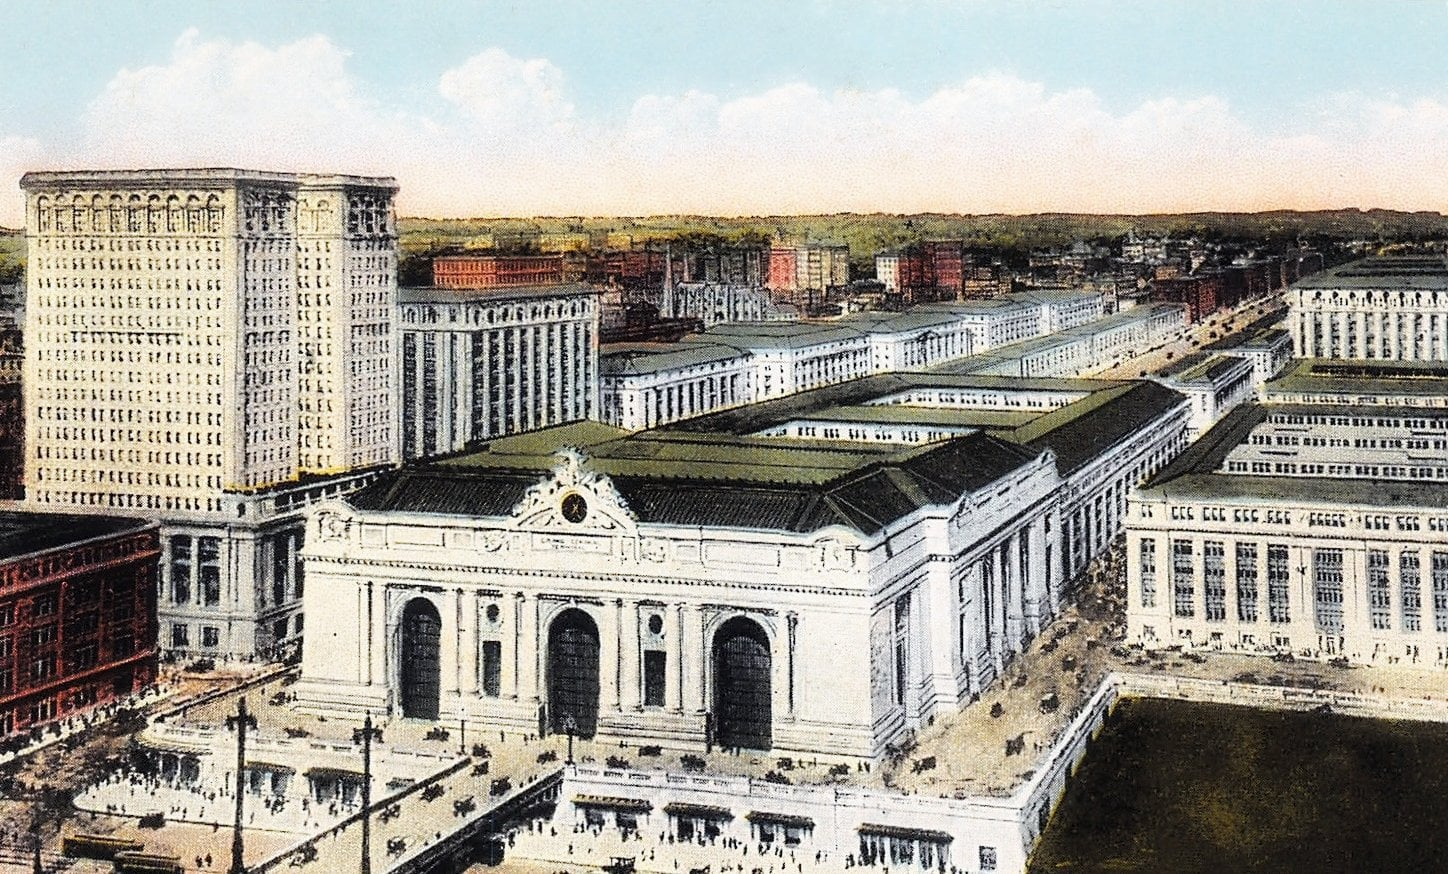 Bird's eye view of Grand Central Terminal, New York City